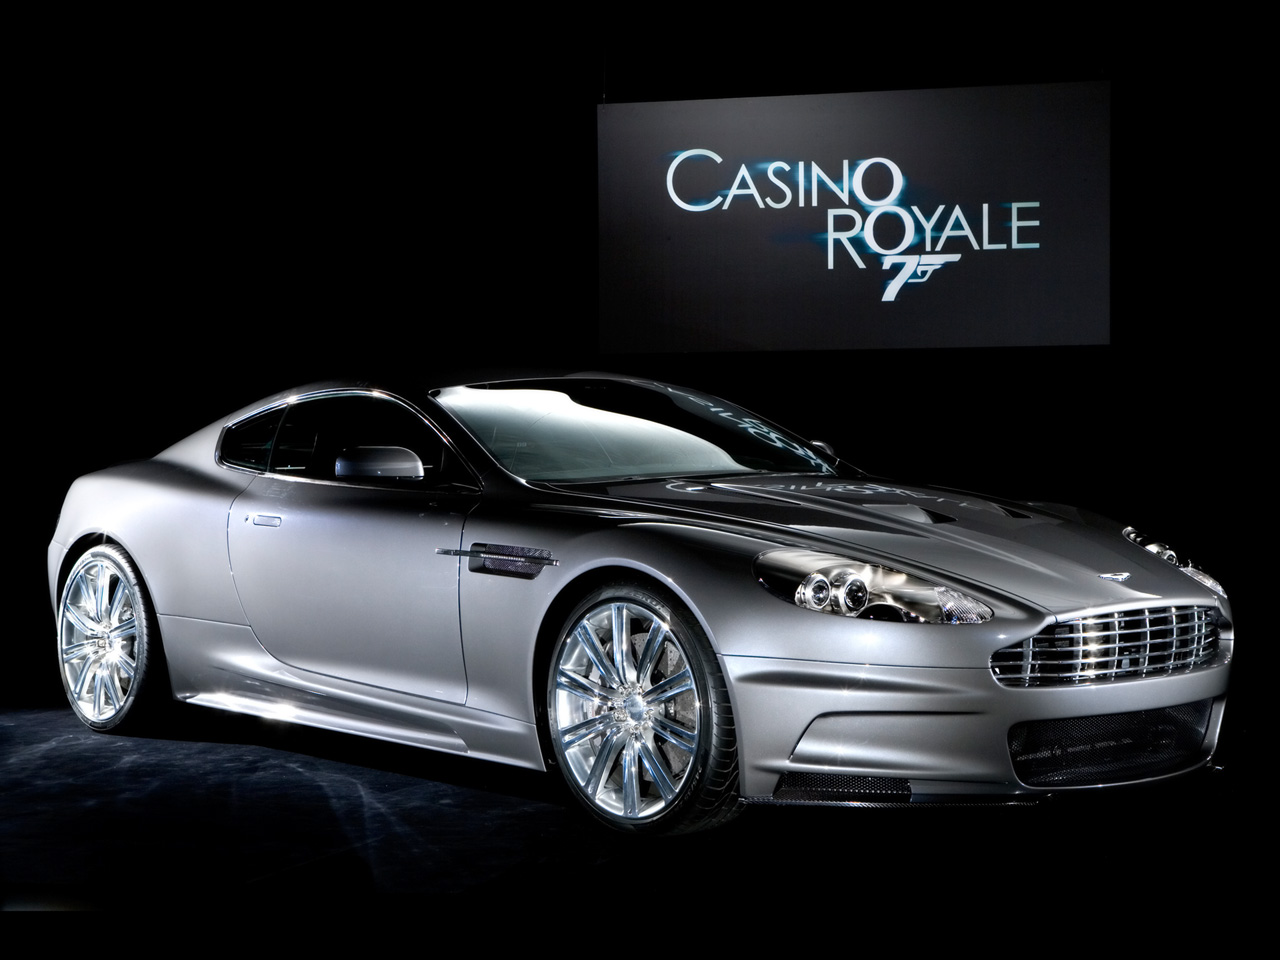 2006-aston-martin-dbs-james-bond-casino-royale-sa-1280×960.jpg